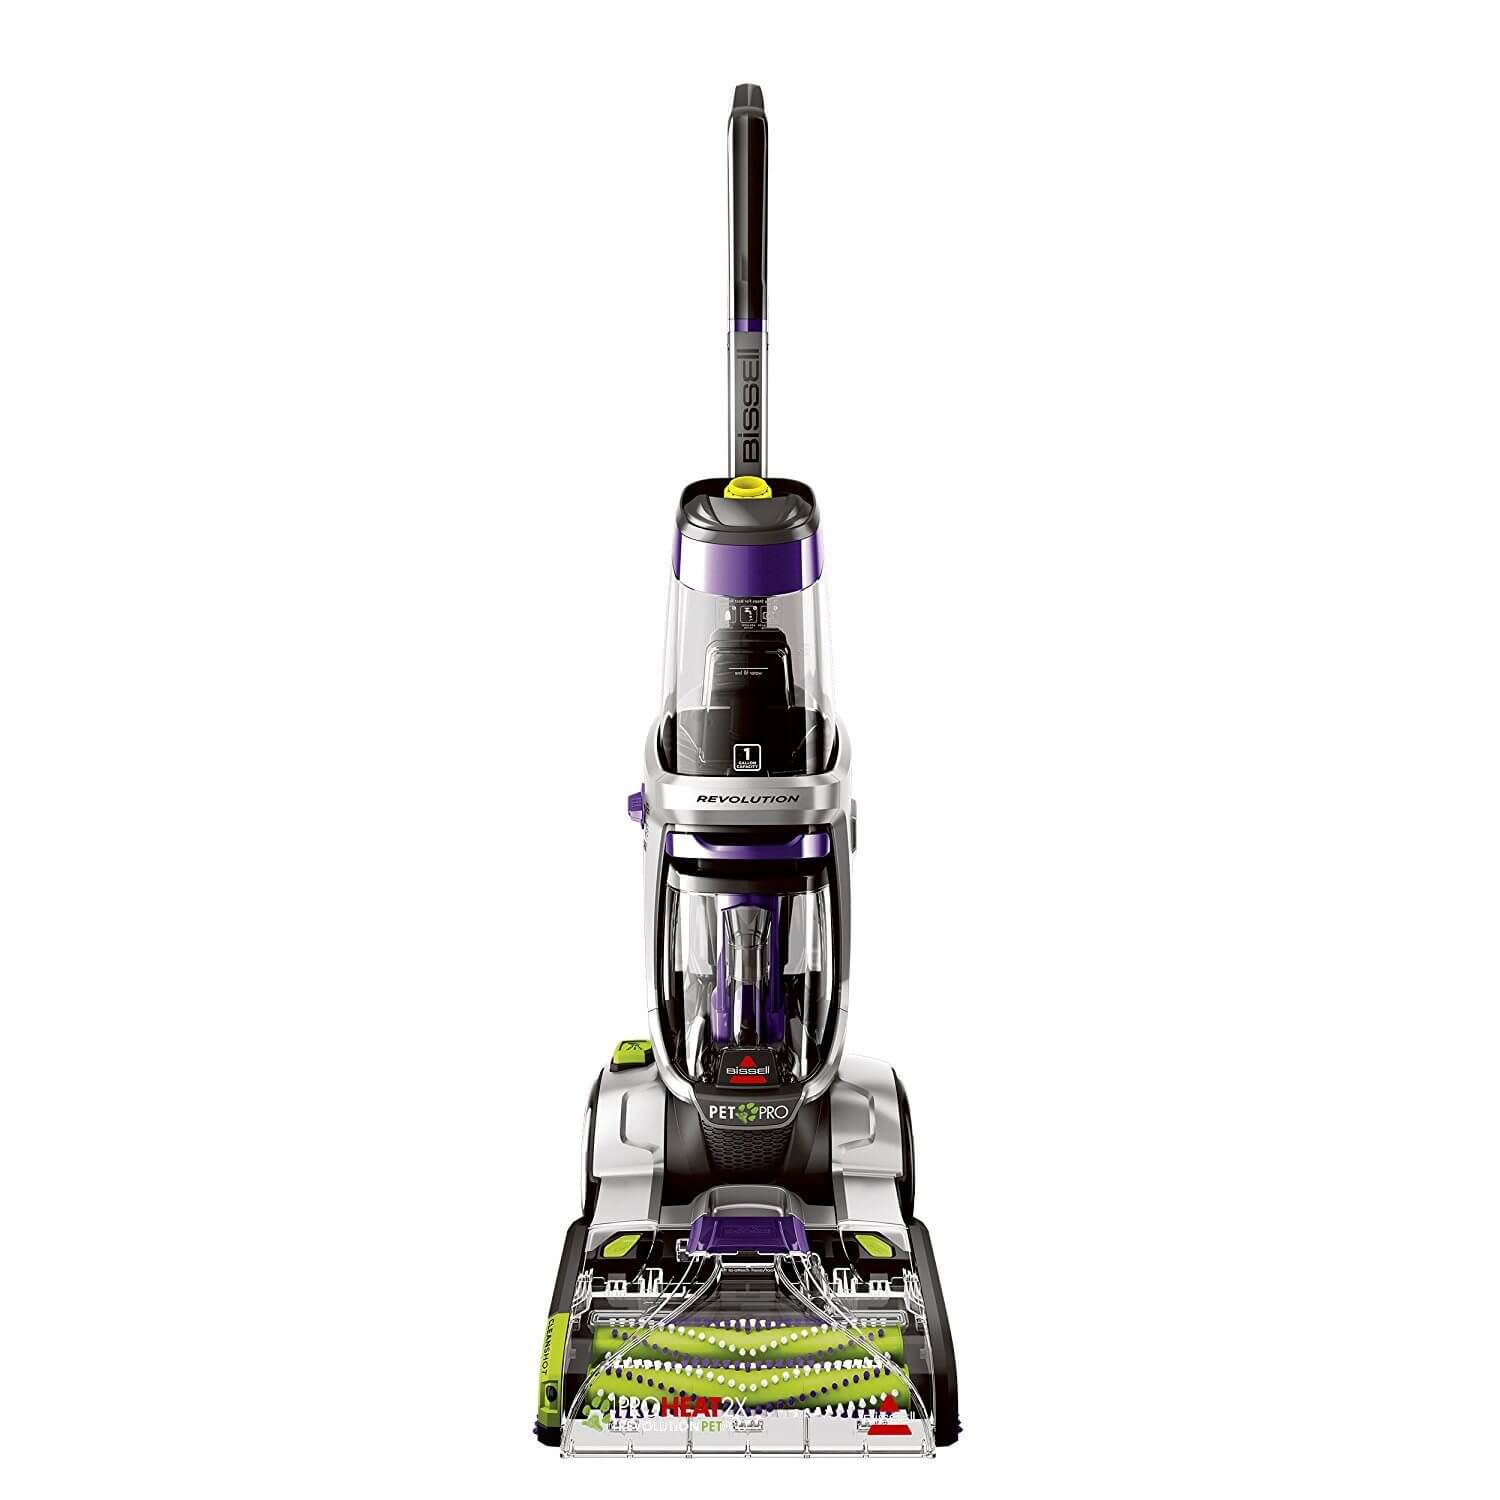 Carpet Cleaning Vacuum Bissell Proheat 2x Revolution Pet Pro Full Size Carpet Cleaner